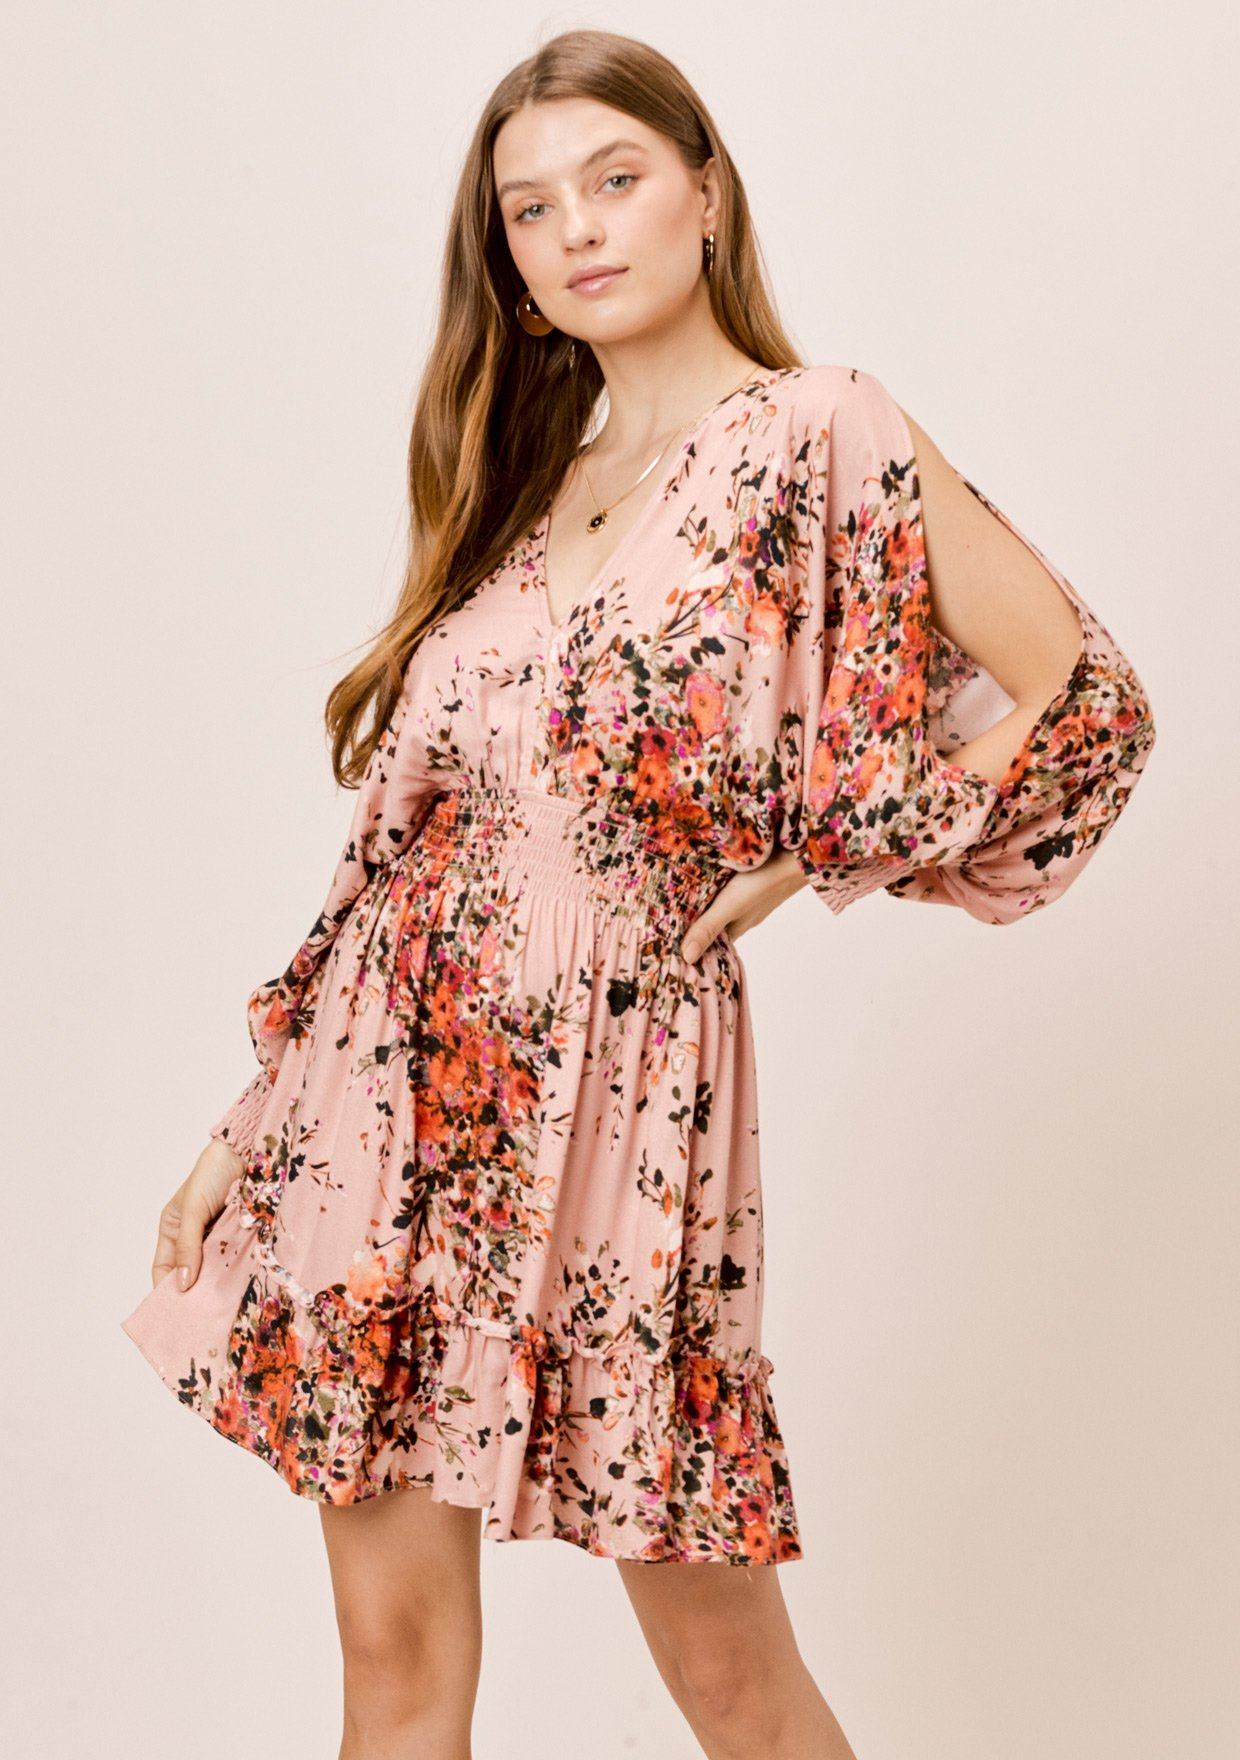 [Color: Clay/Rust/Olive] Lovestitch Bouquet Floral Printed Split Sleeve Mini Dress with Smocked Waist